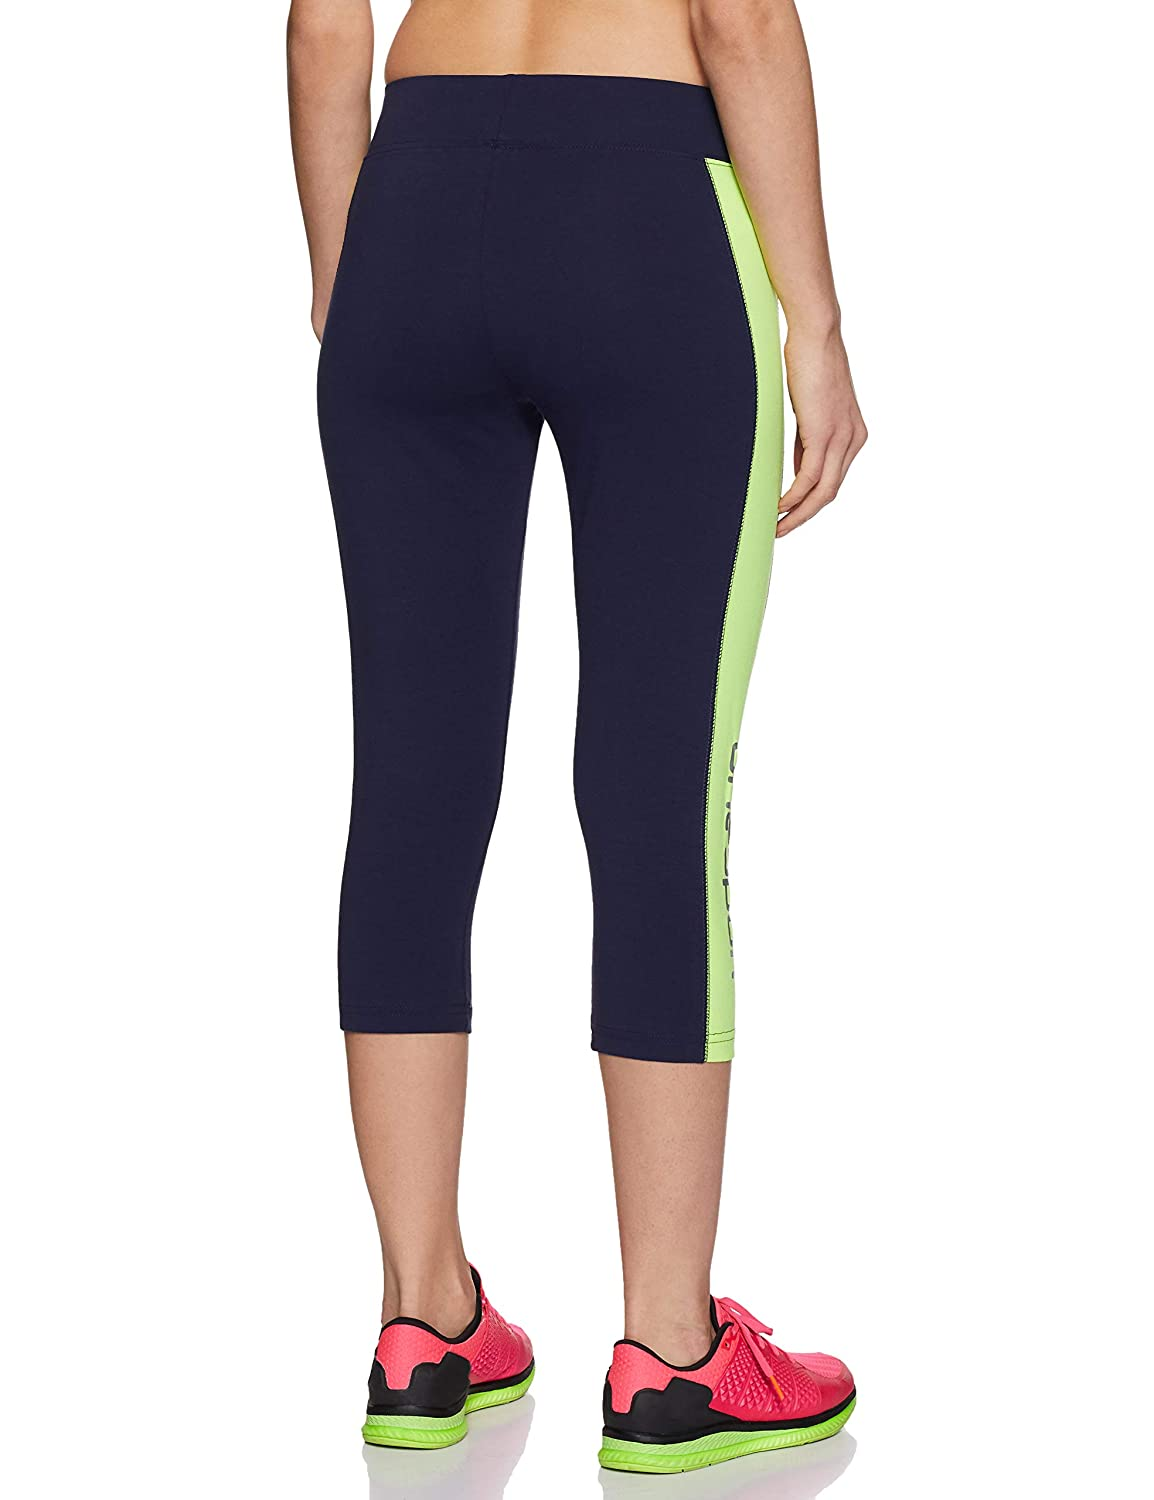 2adc1d6c111 ONESPORT Navy Blue   Green Cotton Spandex Jersey Solid Sports Capri for  Women(ONSP19NG)  Amazon.in  Clothing   Accessories